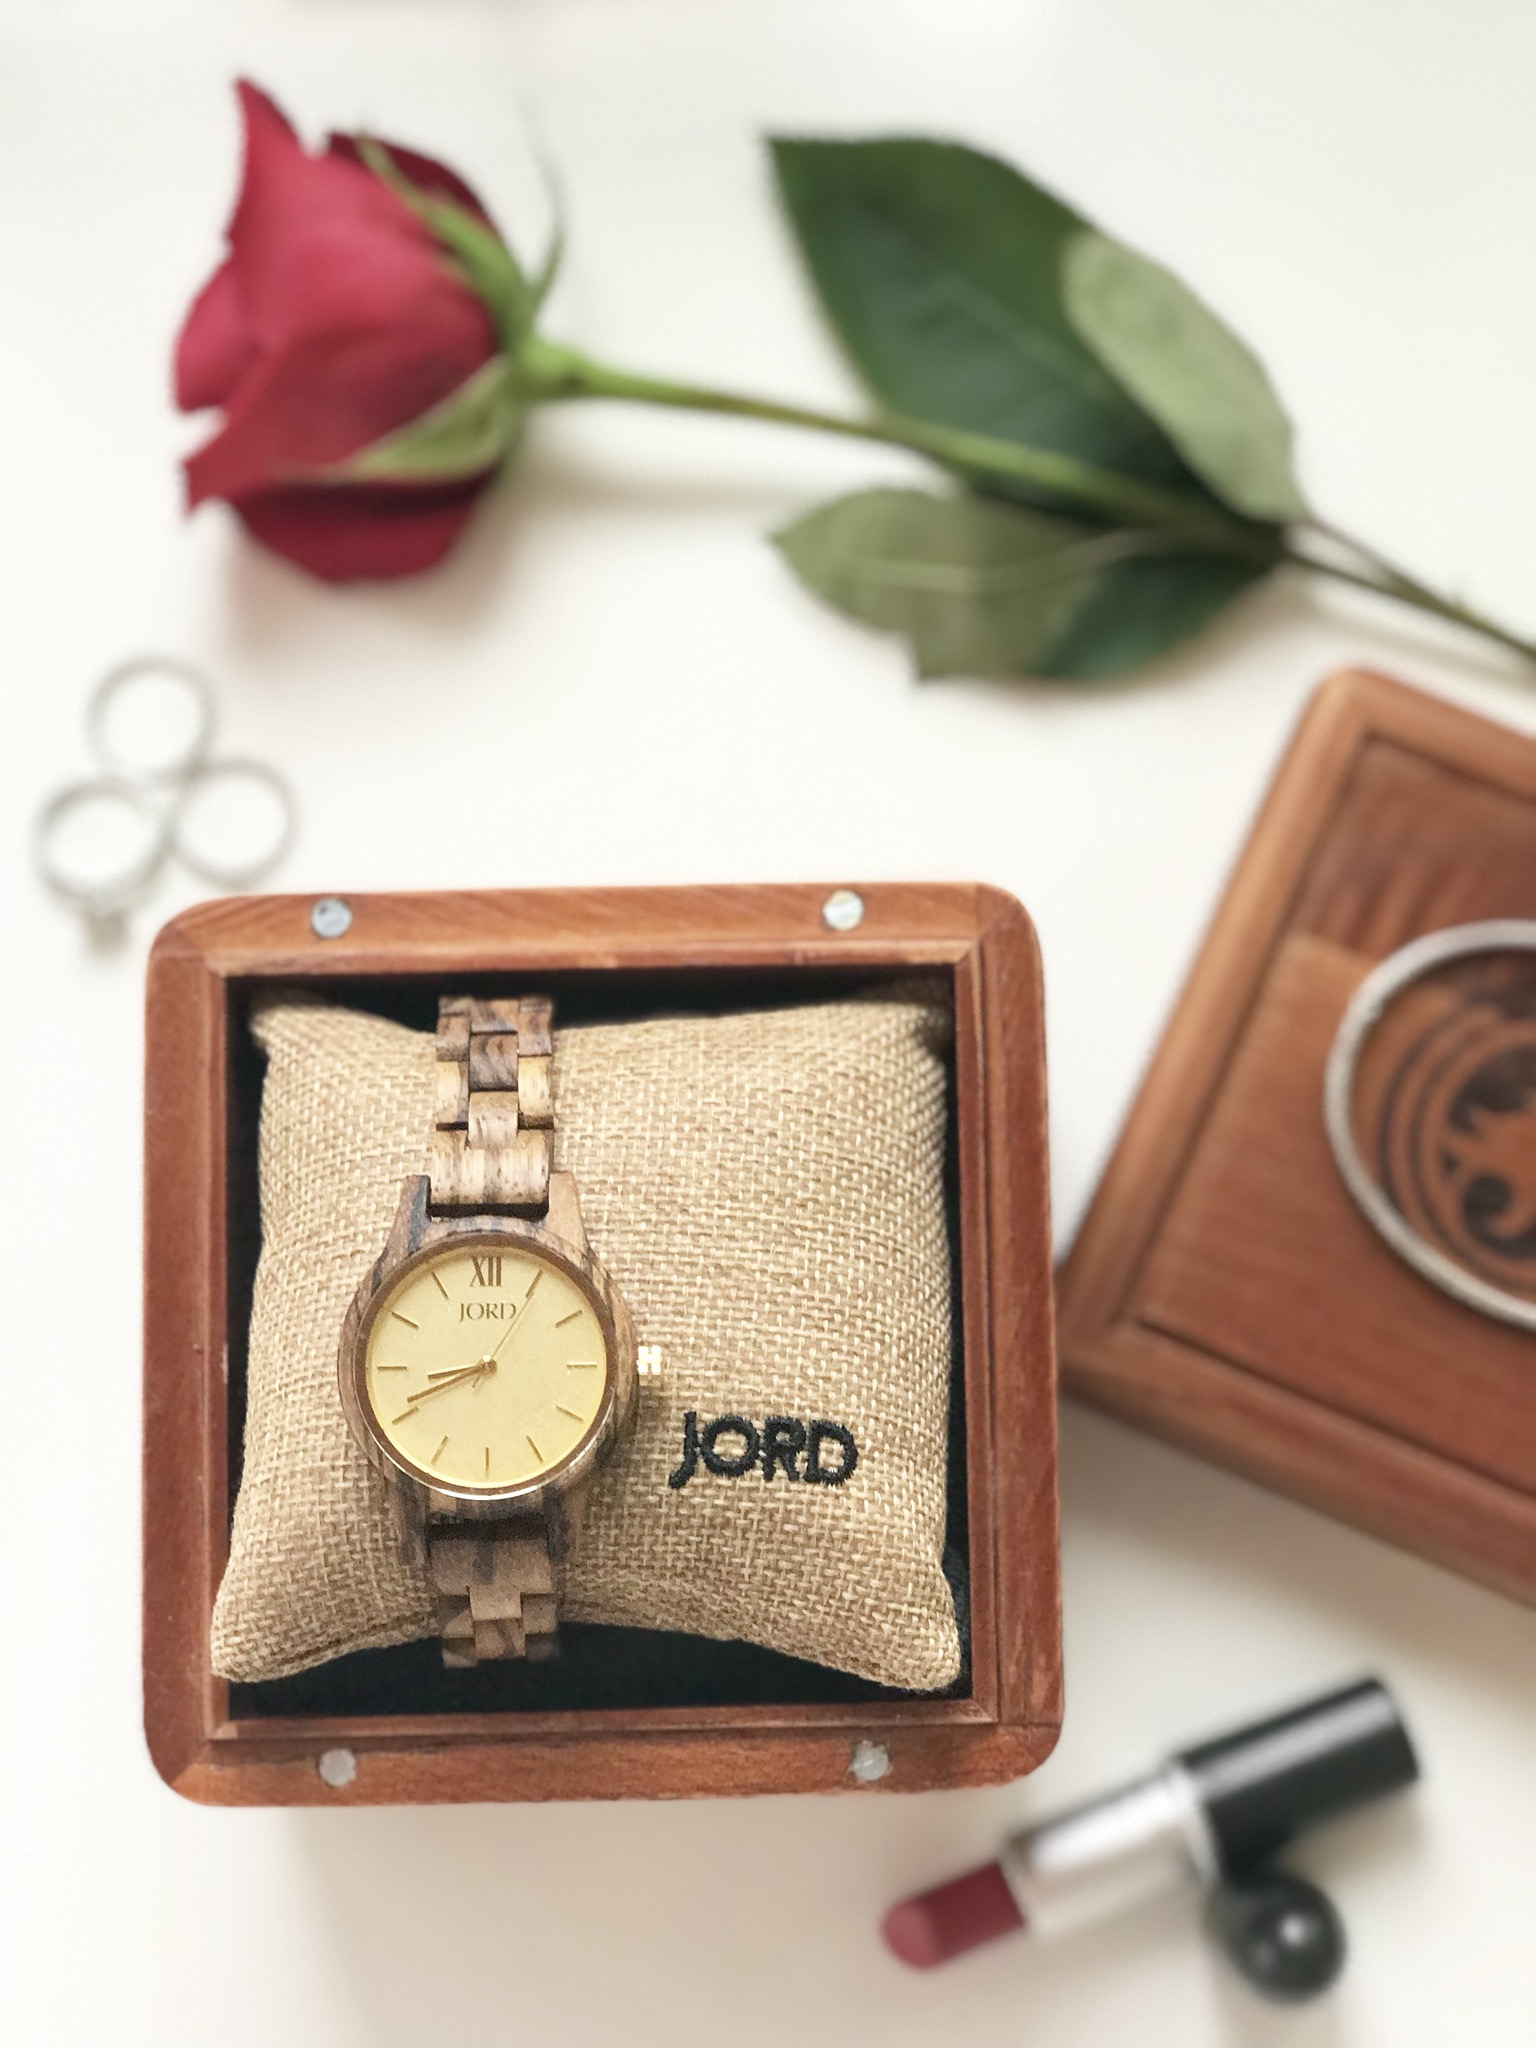 My Latest French Chic Essential: The JORD Zebrawood Watch + A Giveaway!